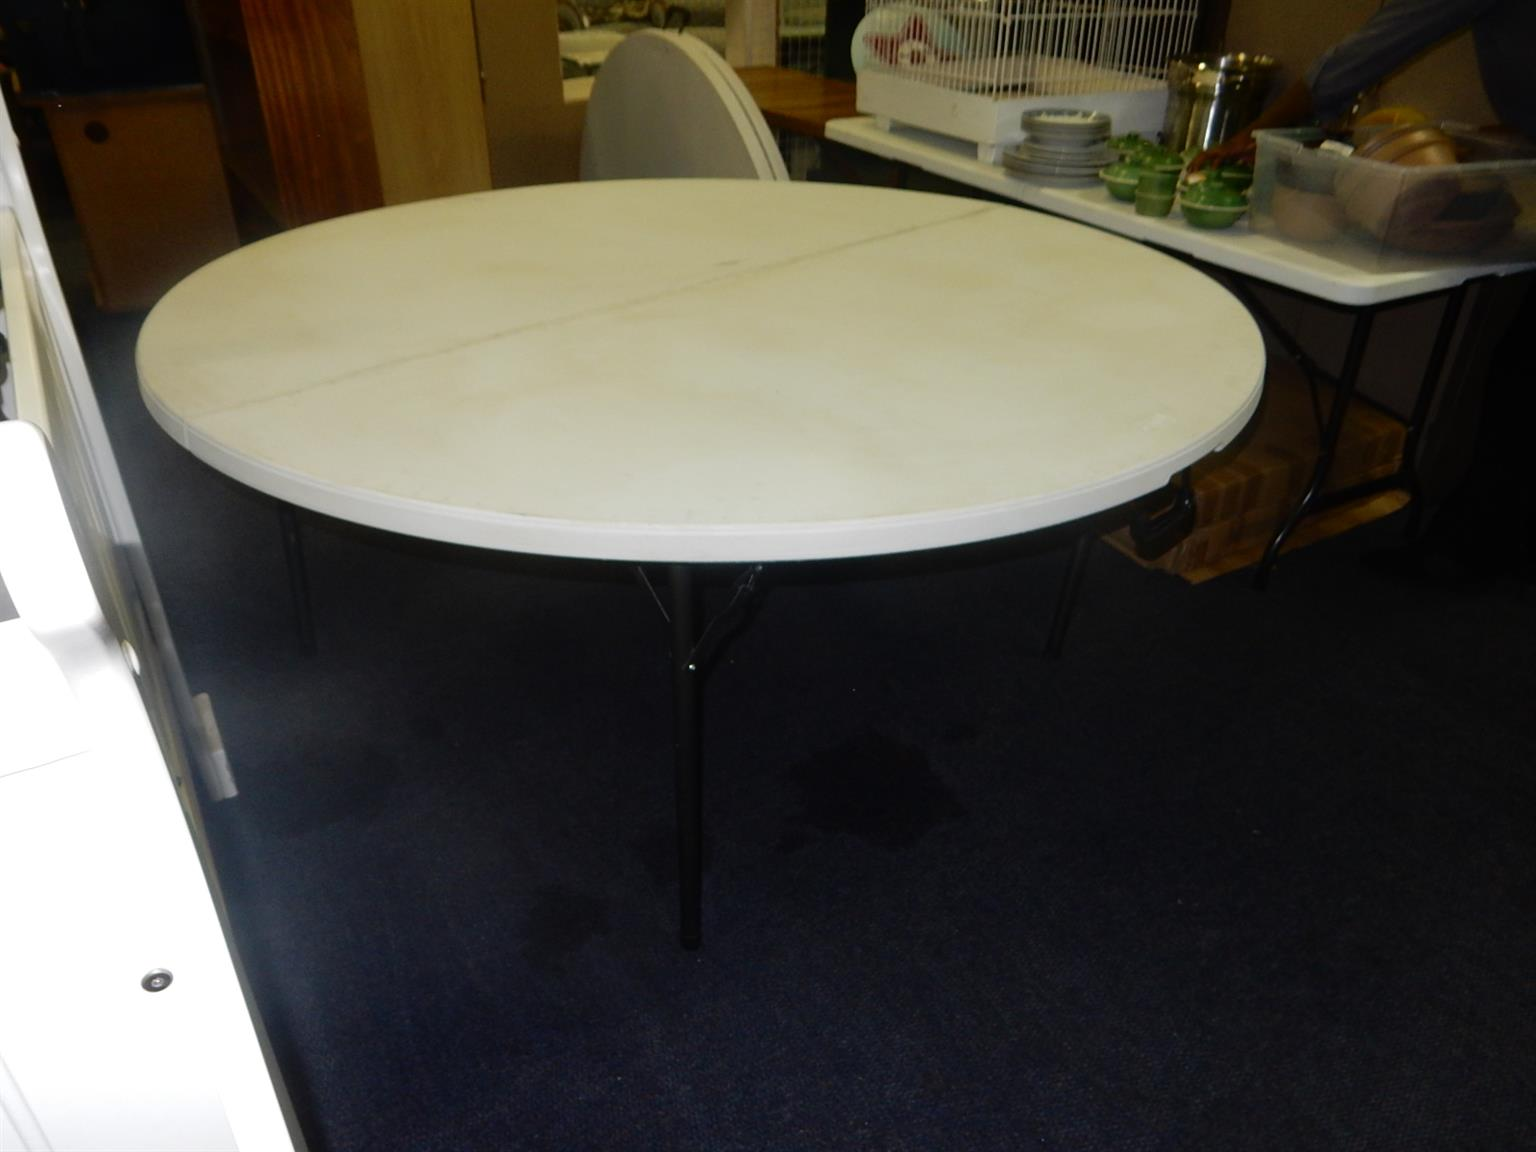 2x Home 1 Round Plastic Table